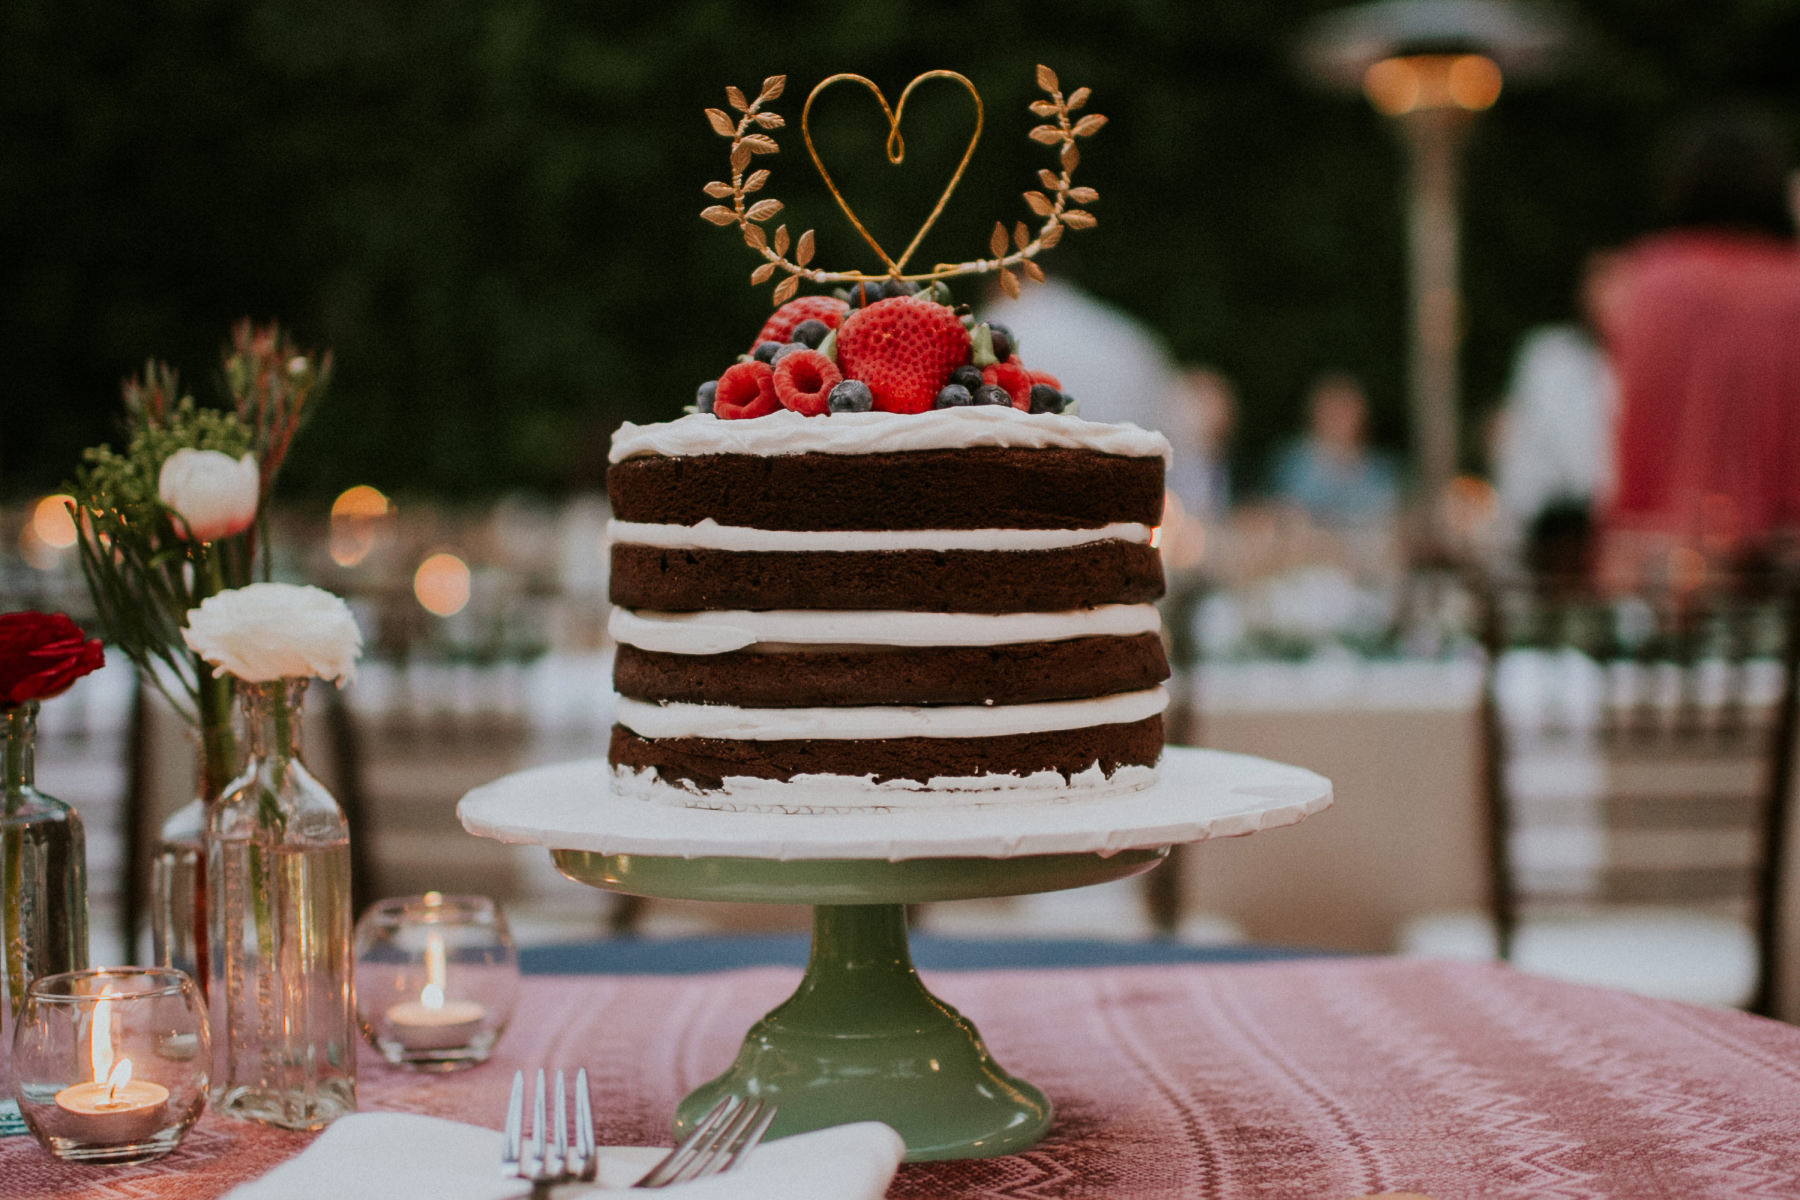 Simple naked chocolate cake with berries and heart wire topper